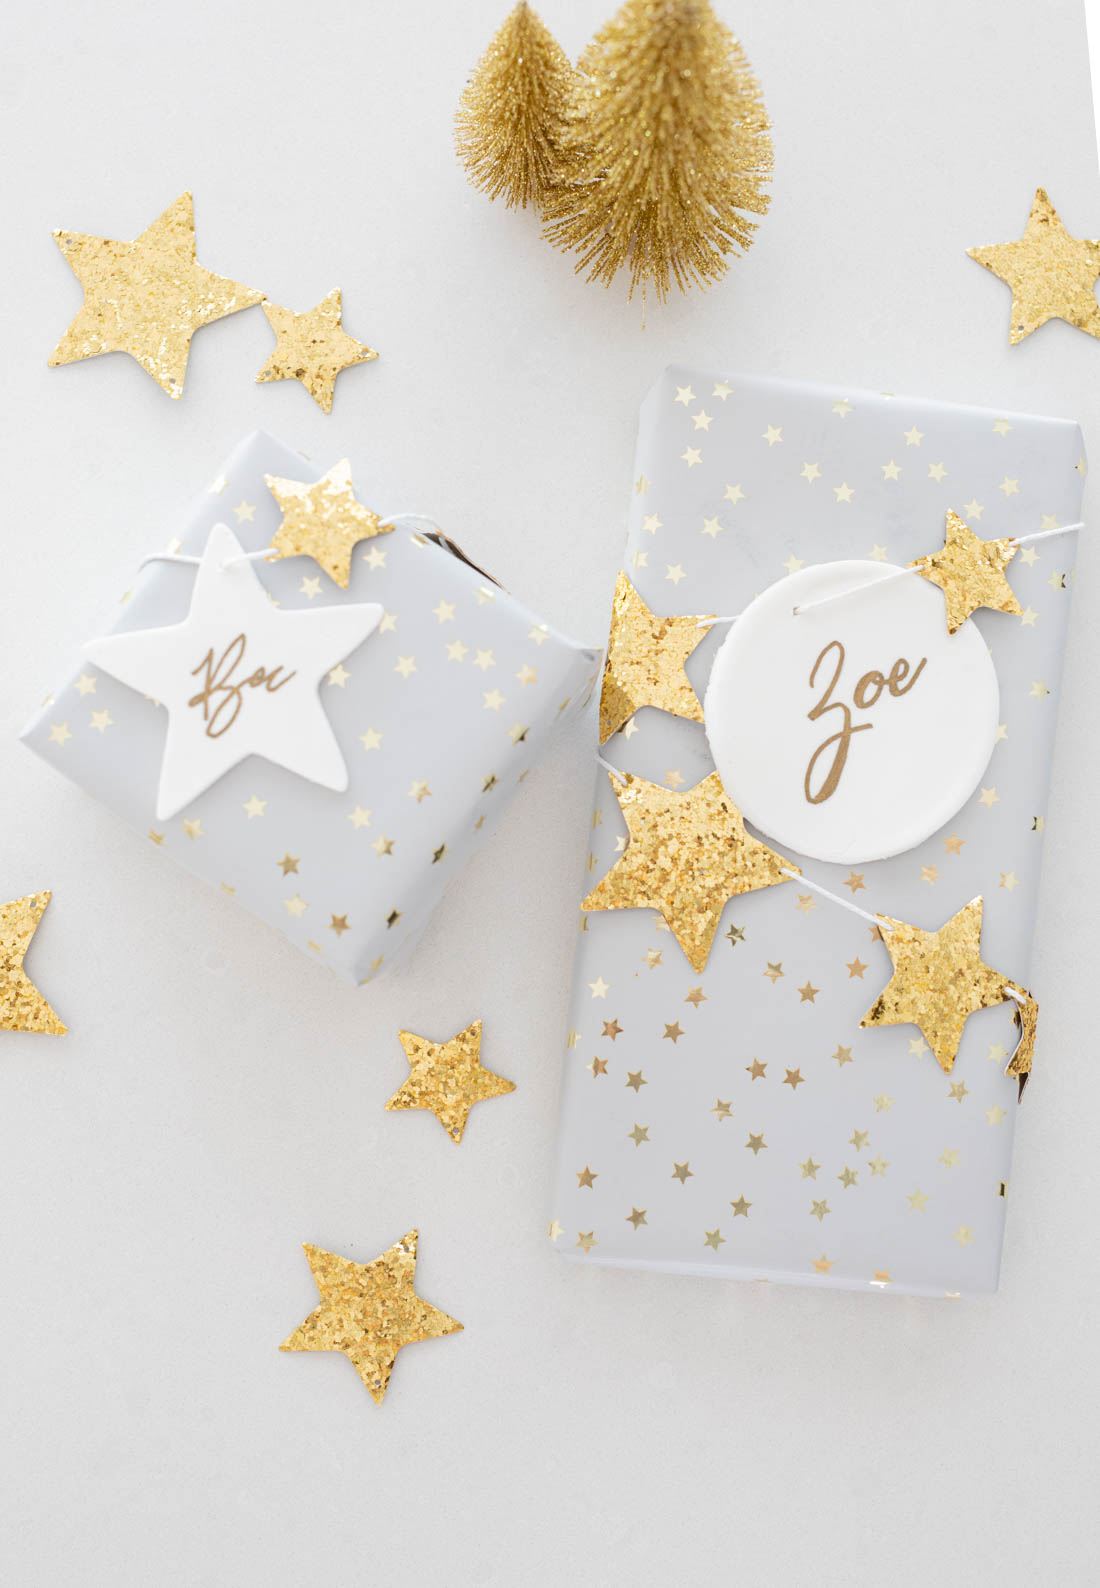 Special way to wrap gifts using DIY Christmas clay ornament